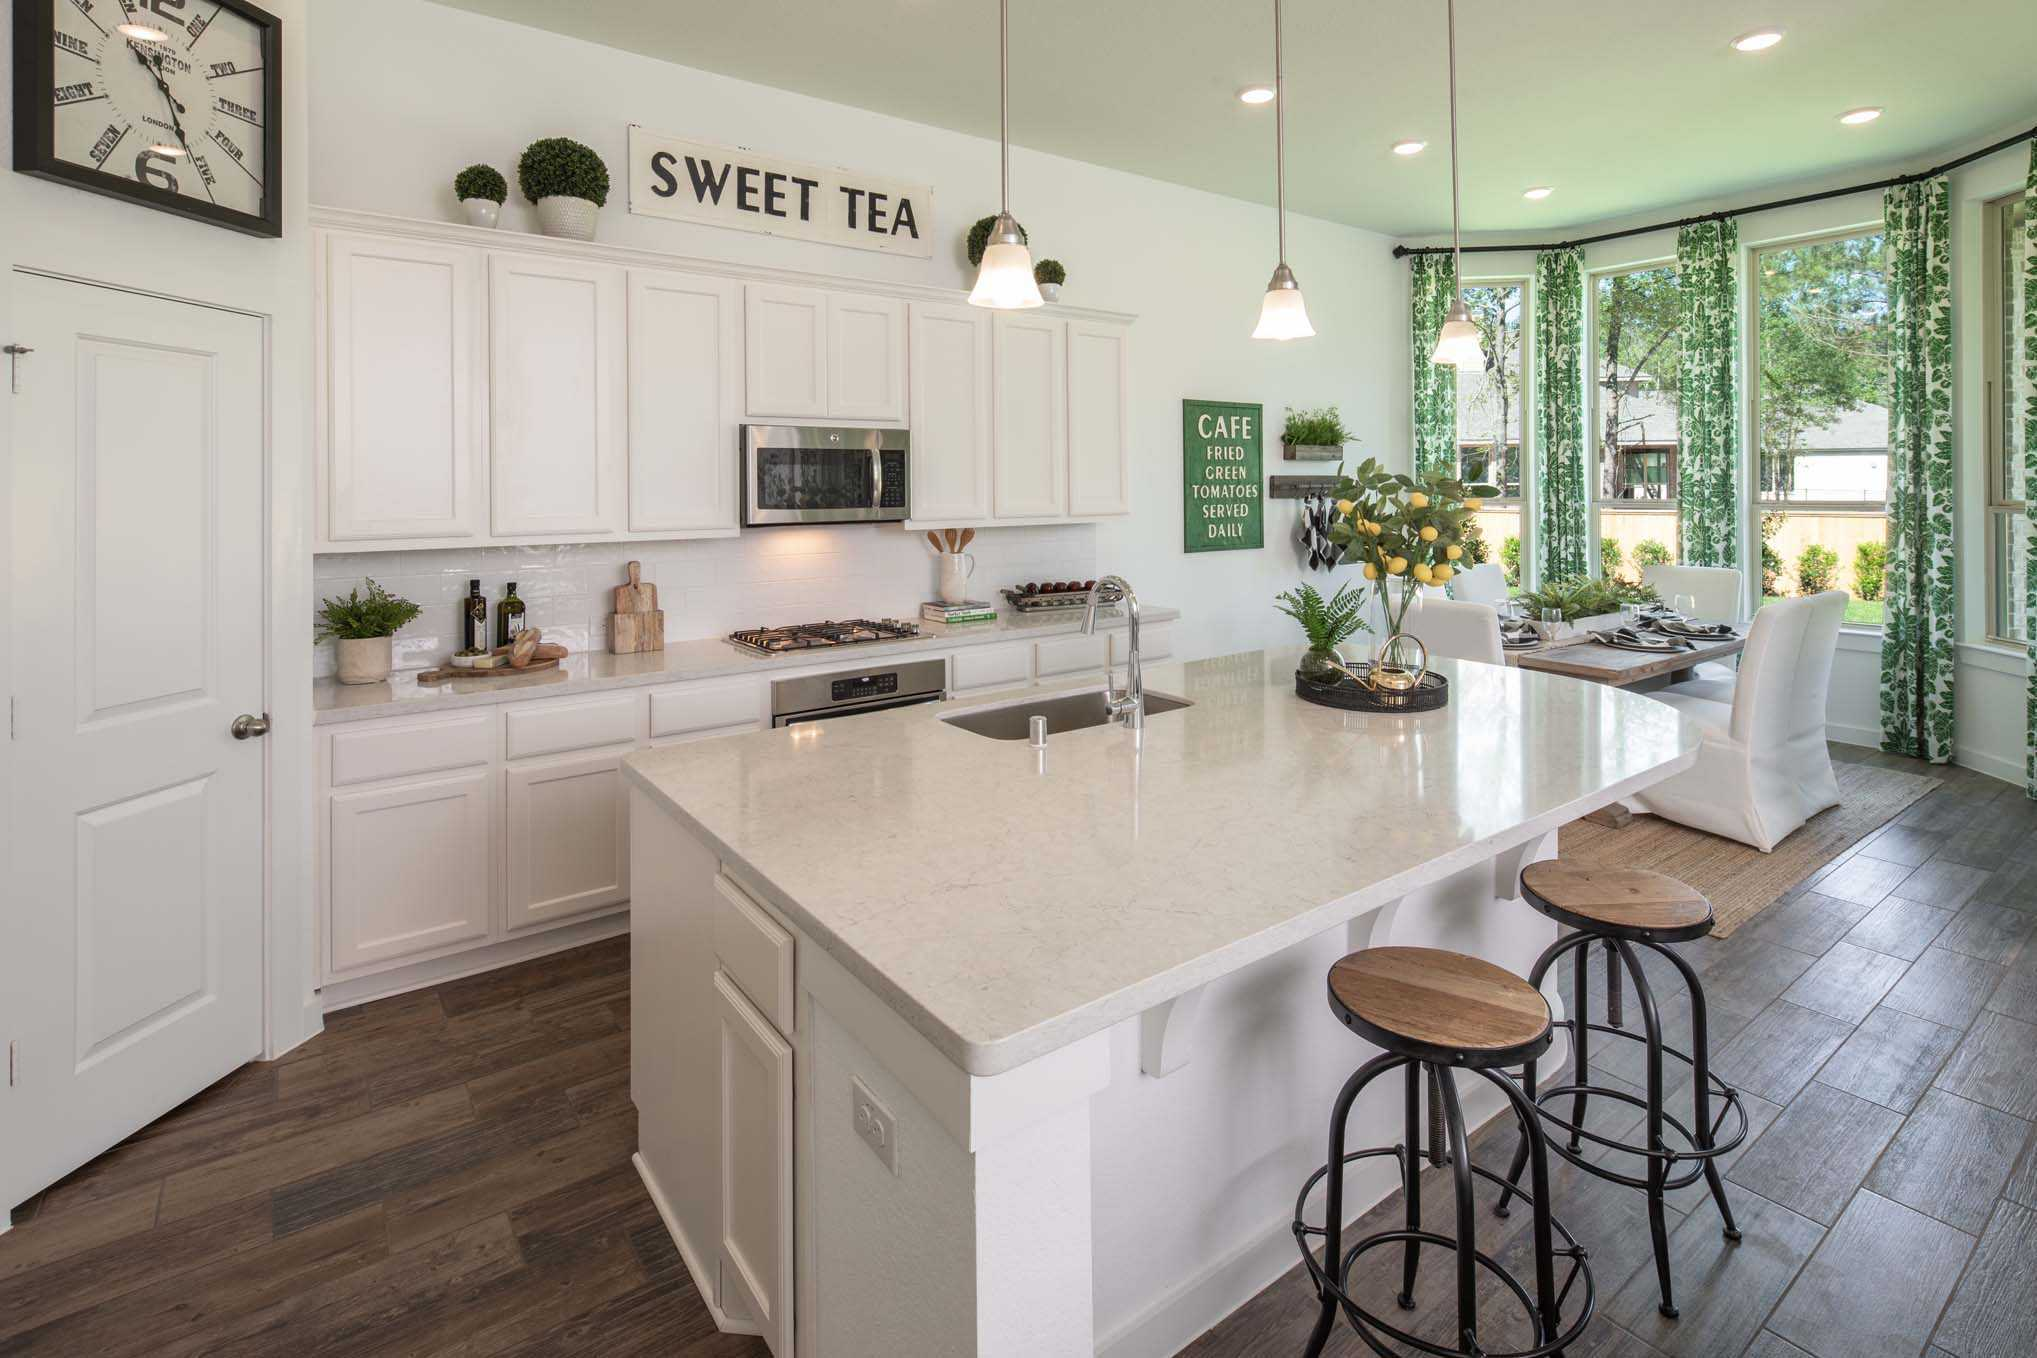 Kitchen featured in the Plan Amberley By Highland Homes in Austin, TX